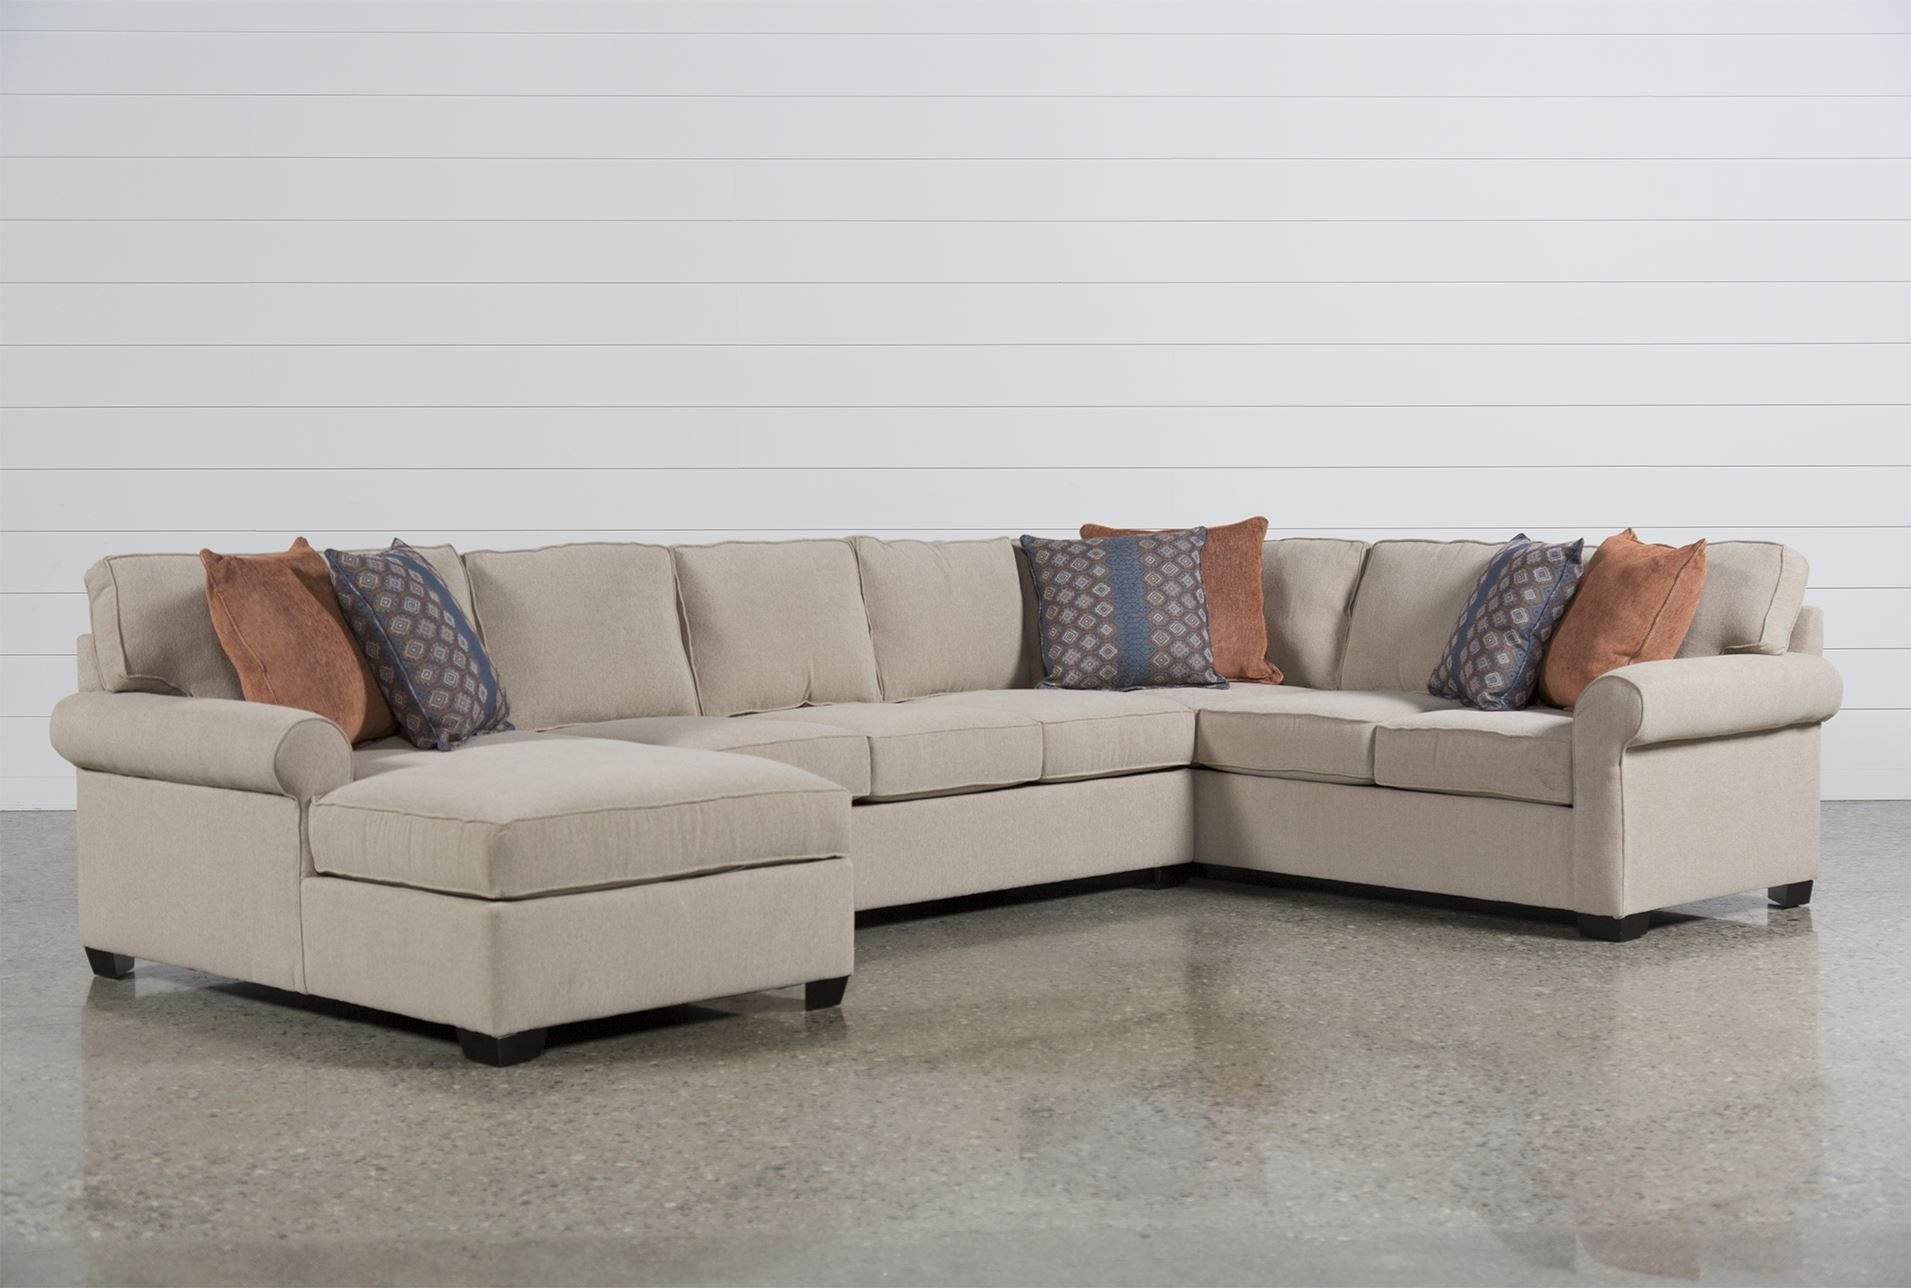 Camilla 3 Piece Sectional W/laf Chaise | Couches | Pinterest Pertaining To Glamour Ii 3 Piece Sectionals (Image 6 of 25)